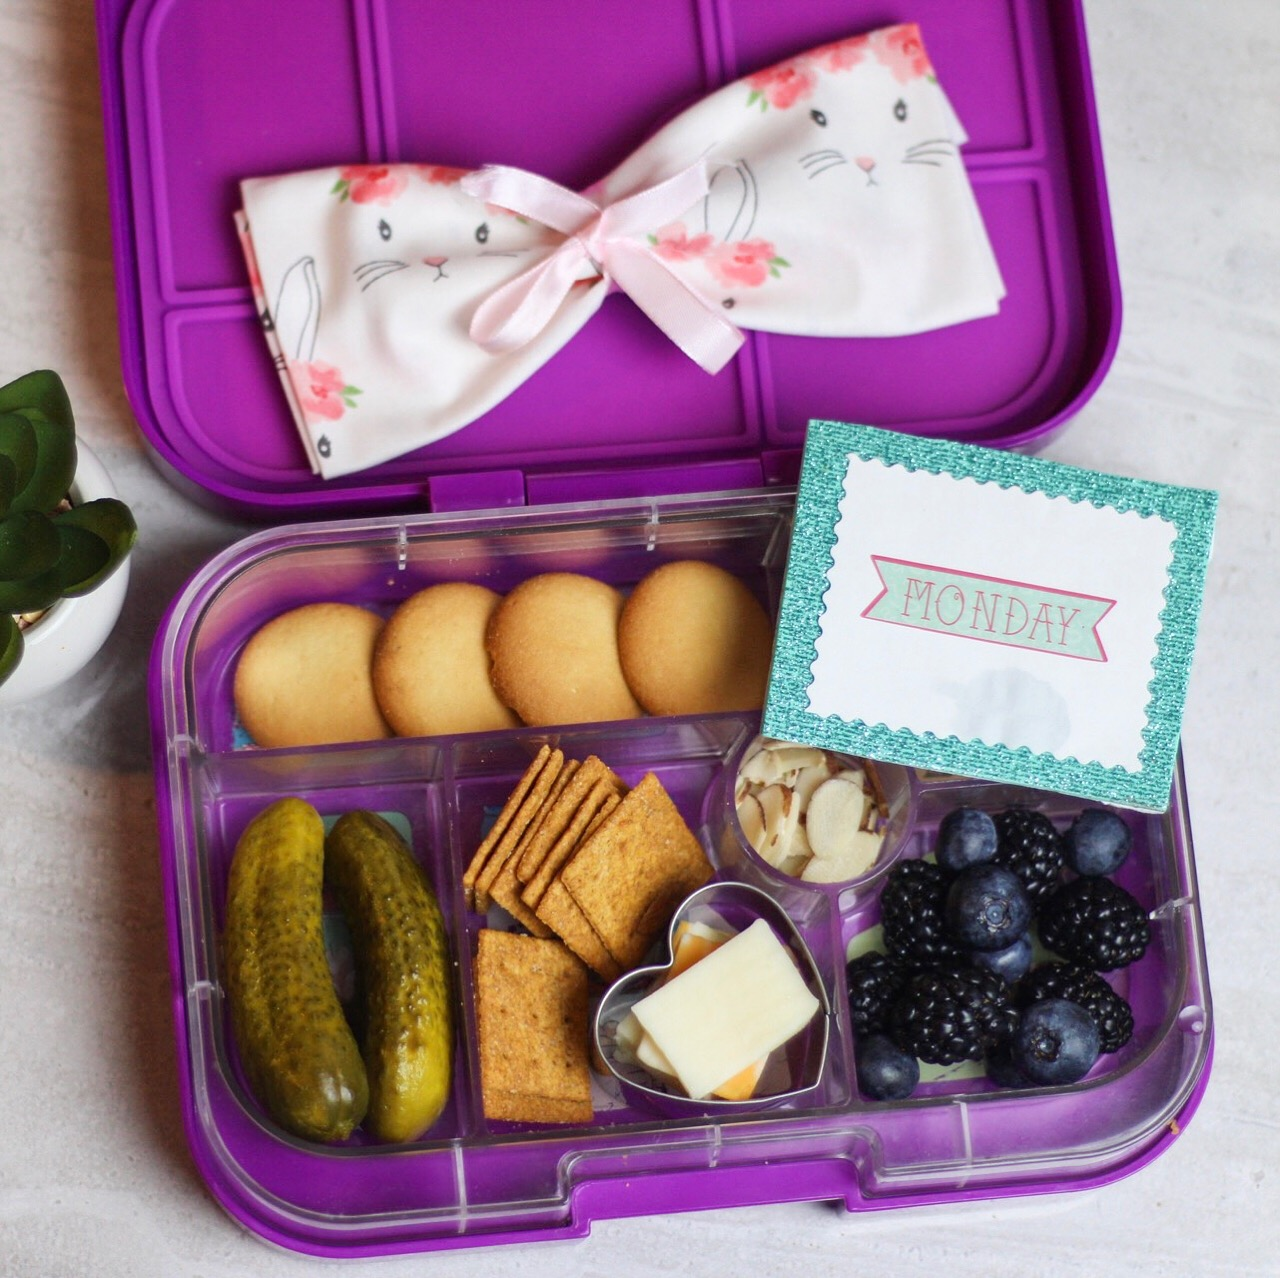 Kiddie Charcuterie Tray! - Mini pickles, wheat thins, assorted cheese,blackberries, blueberries, almonds, and mini vanilla wafers!